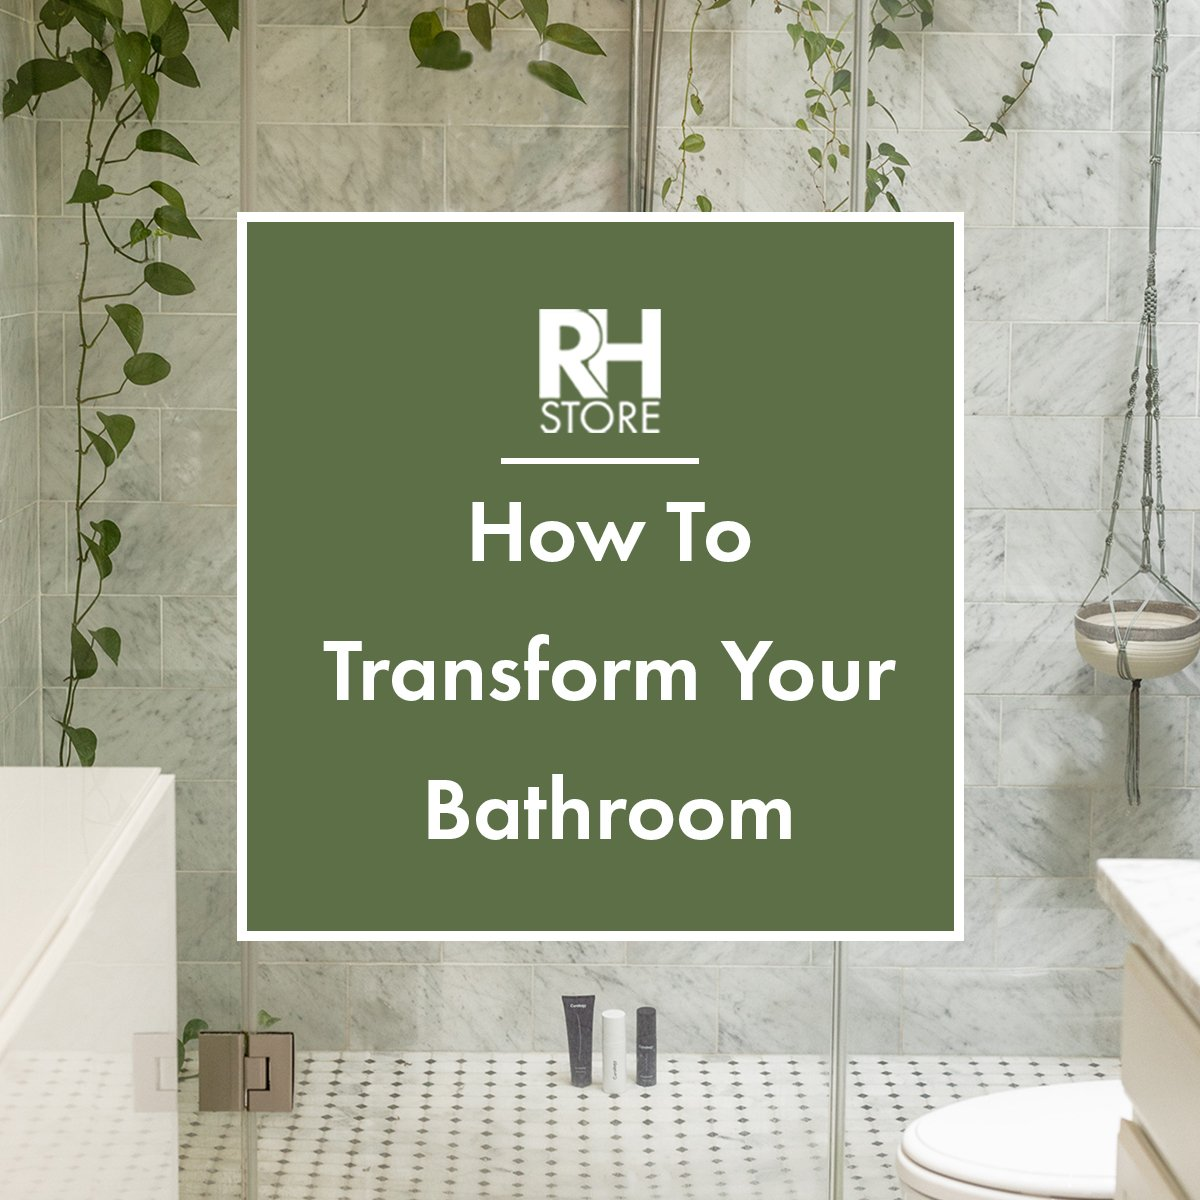 How To Transform Your Bathroom - 5 Tips